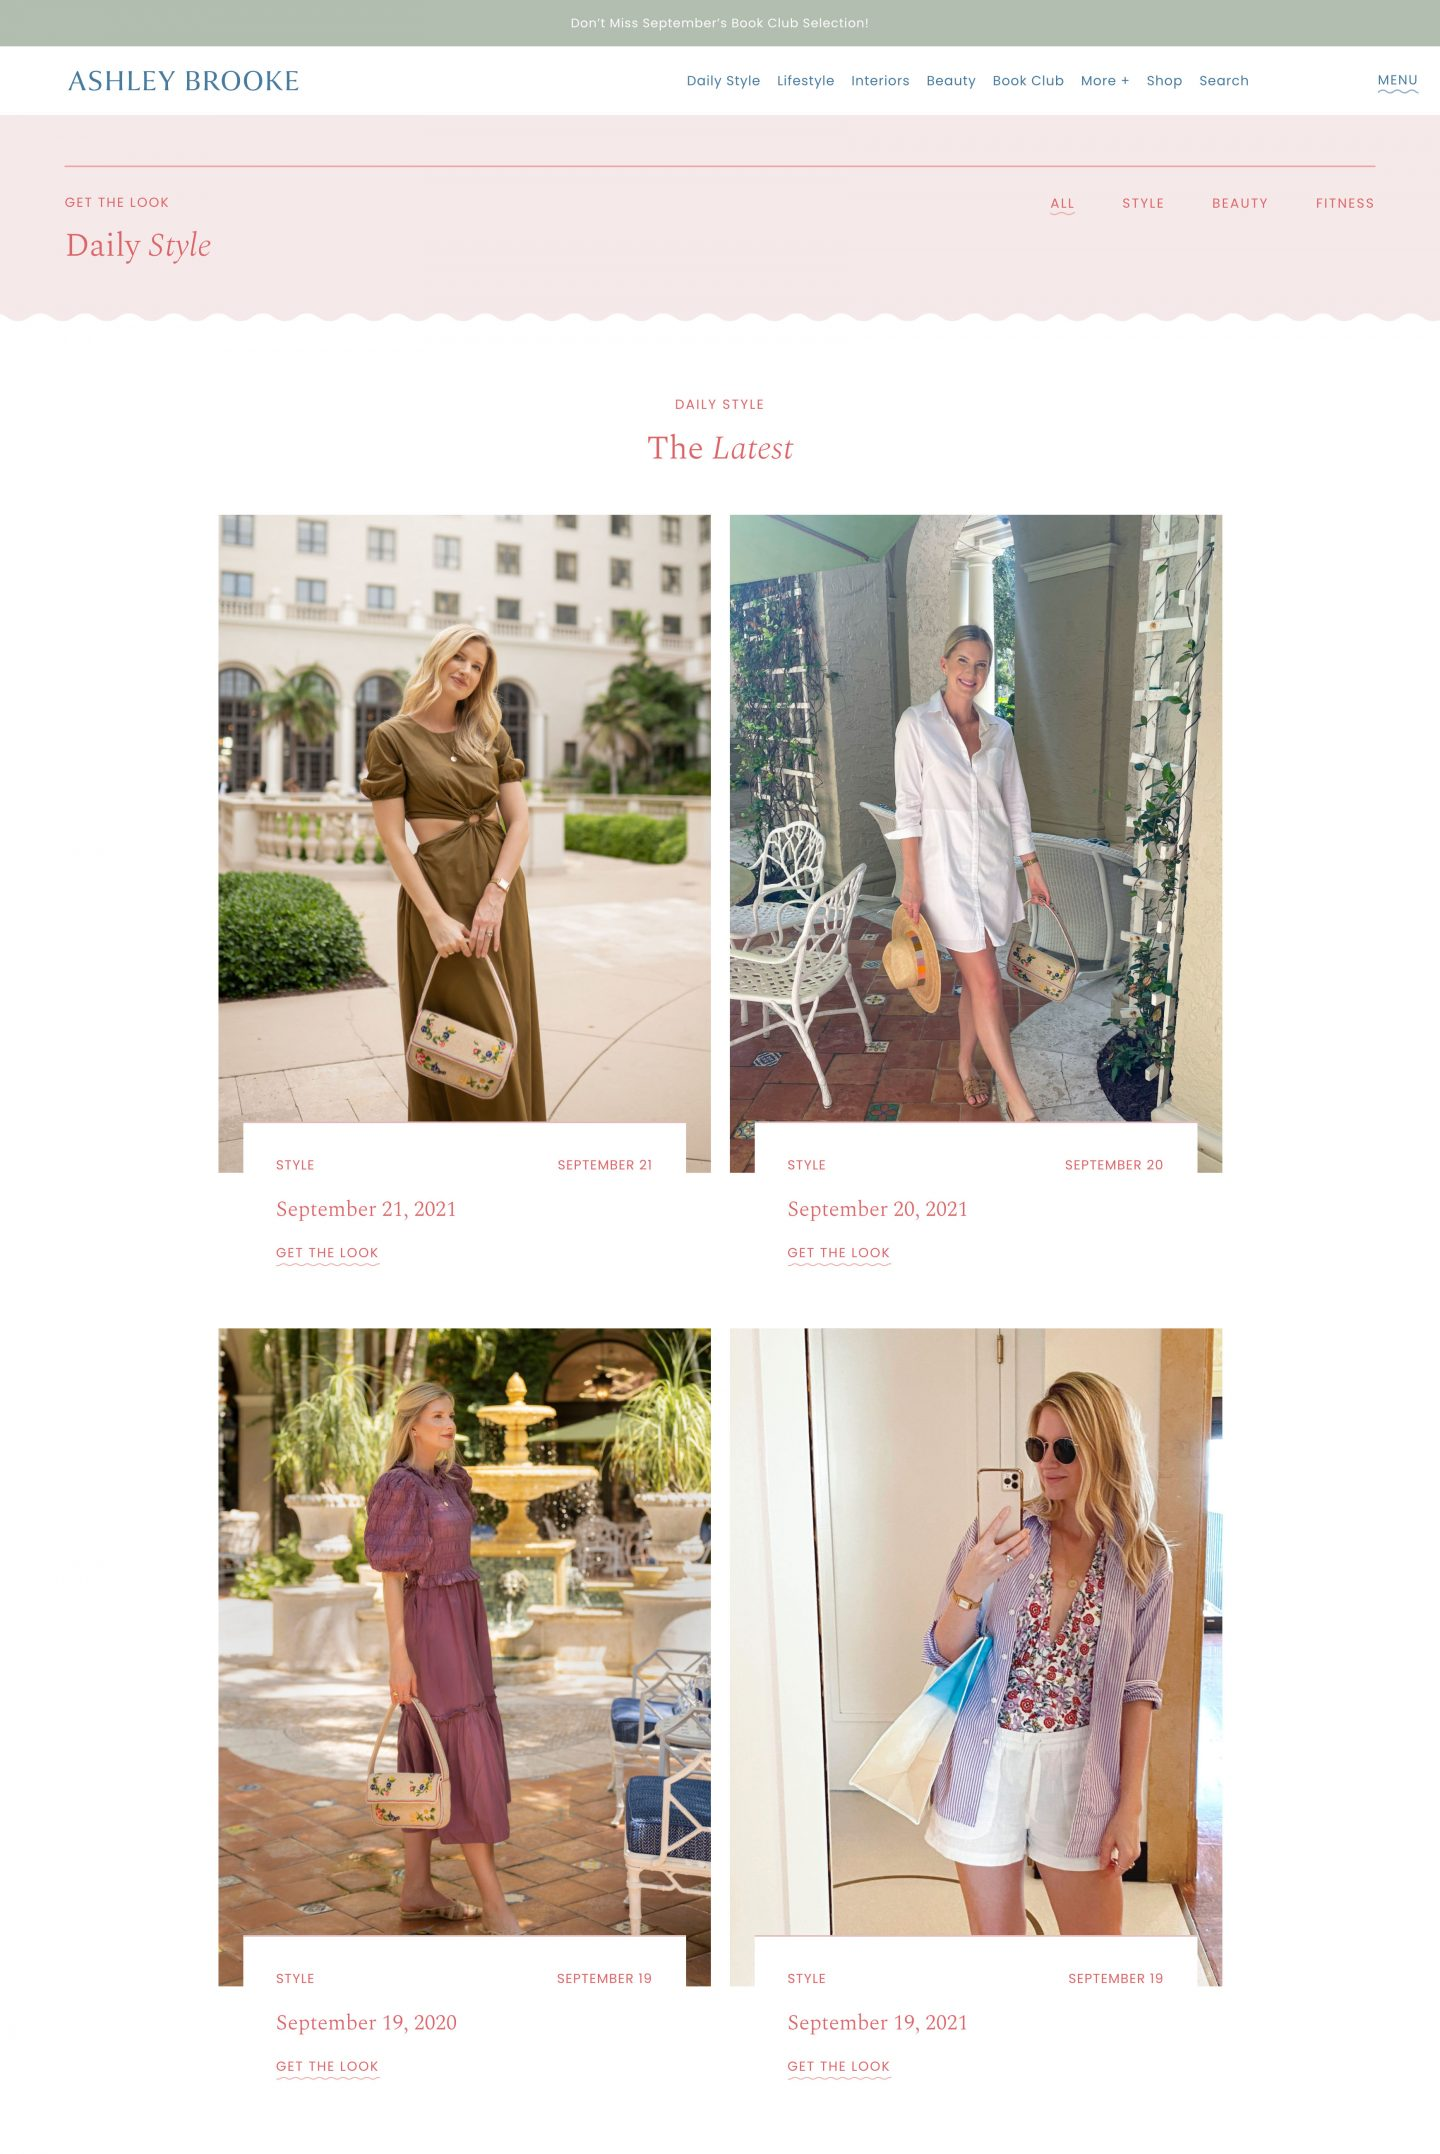 Our New Online Home ashleybrooke.com | The Daily Style